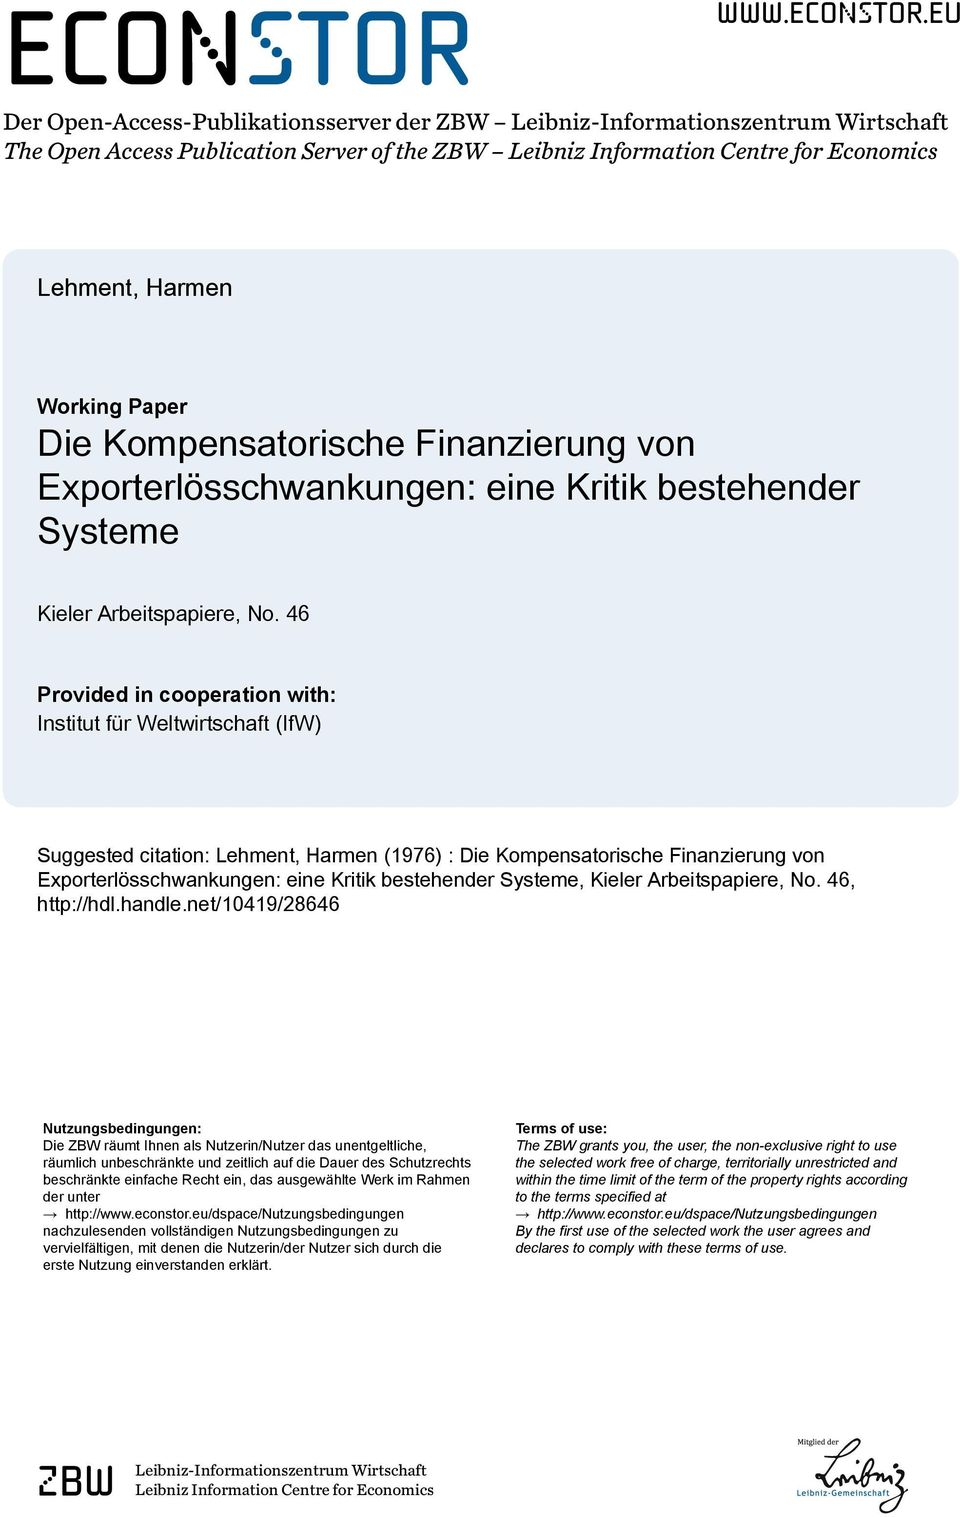 eu Der Open-Access-Publikationsserver der ZBW Leibniz-Informationszentrum Wirtschaft The Open Access Publication Server of the ZBW Leibniz Information Centre for Economics Lehment, Harmen Working